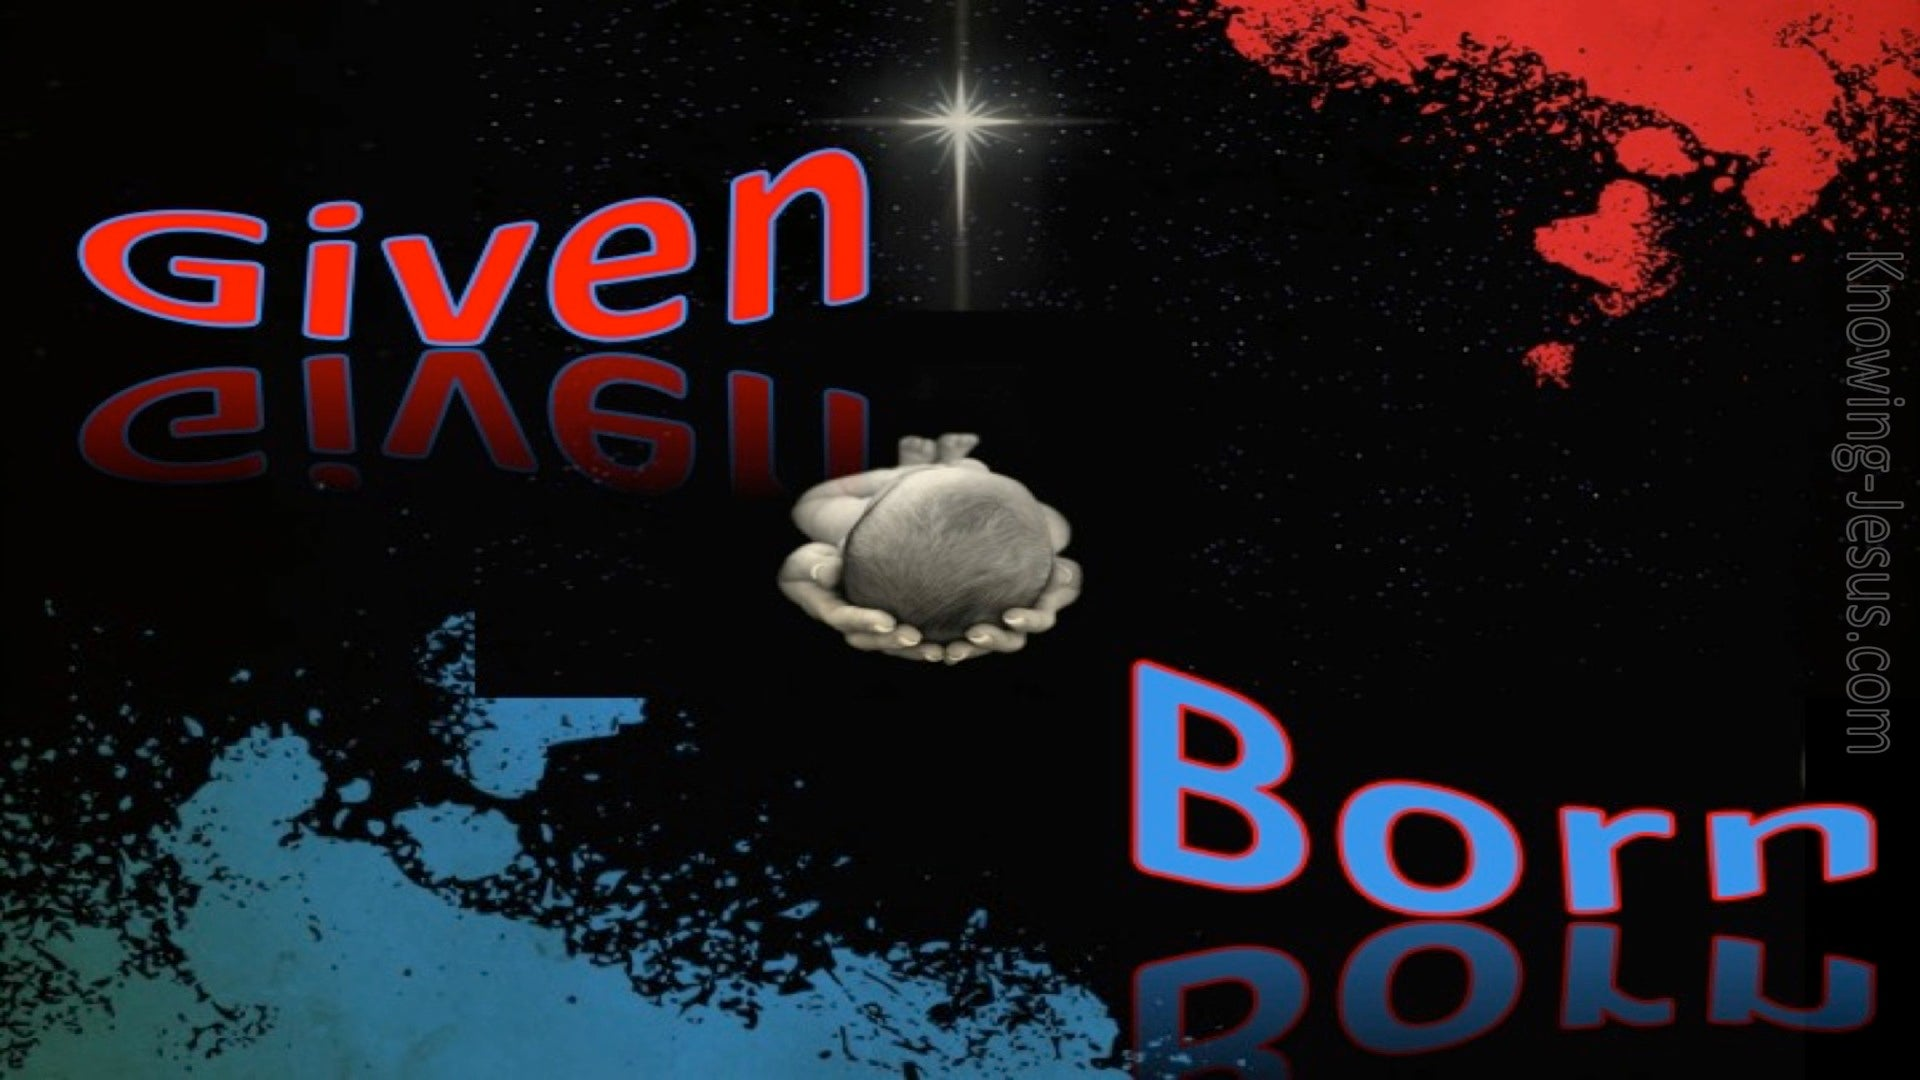 Given and Born (devotional) (black) - Isaiah 9:6